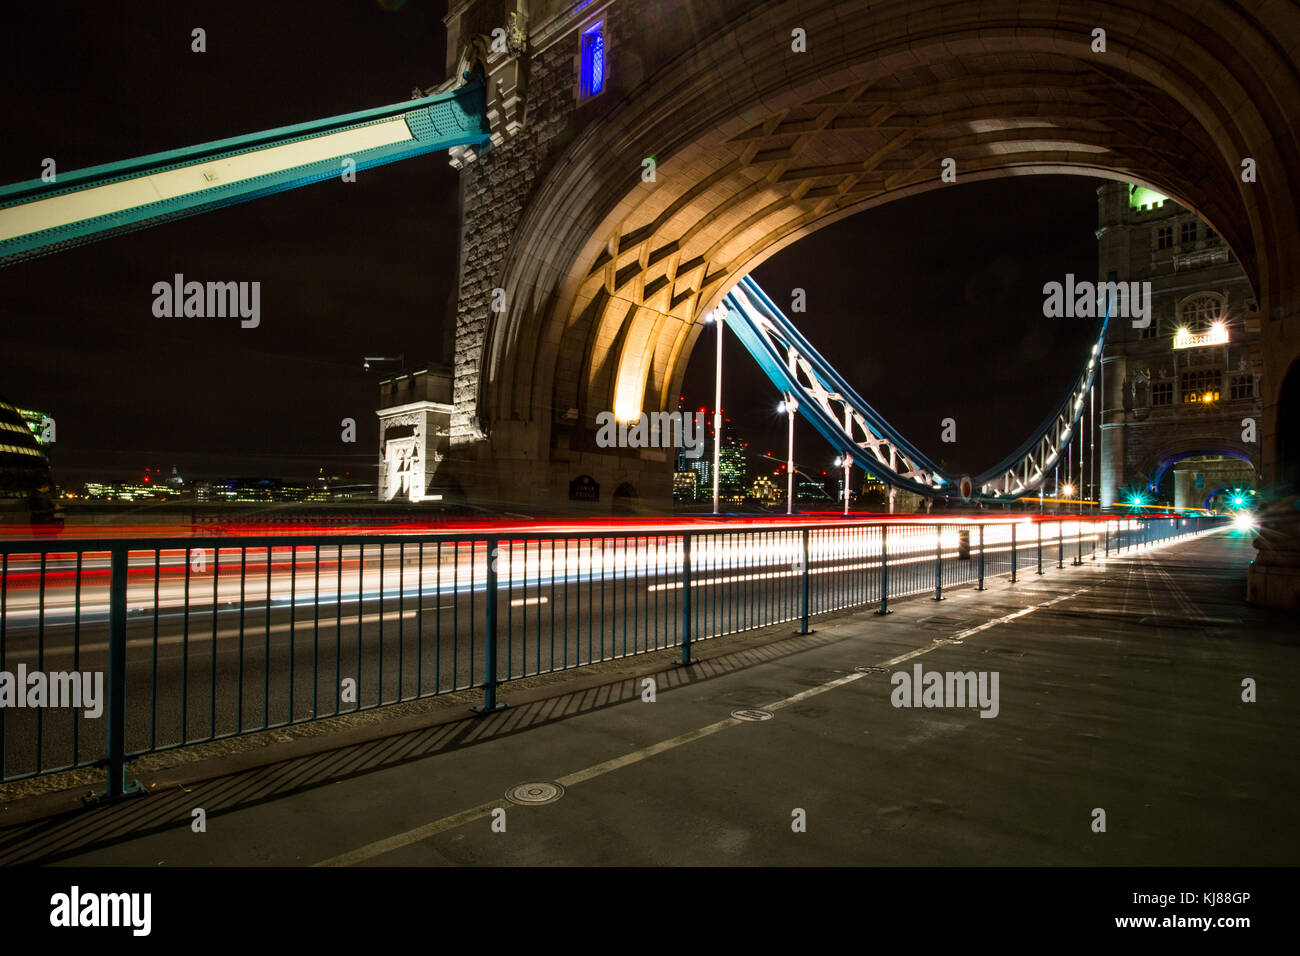 Sir Norman Foster's Wobbly Millennium Pedestrian Bridge from Southbank to Sir Christopher Wren's iconic famous landmark Stock Photo